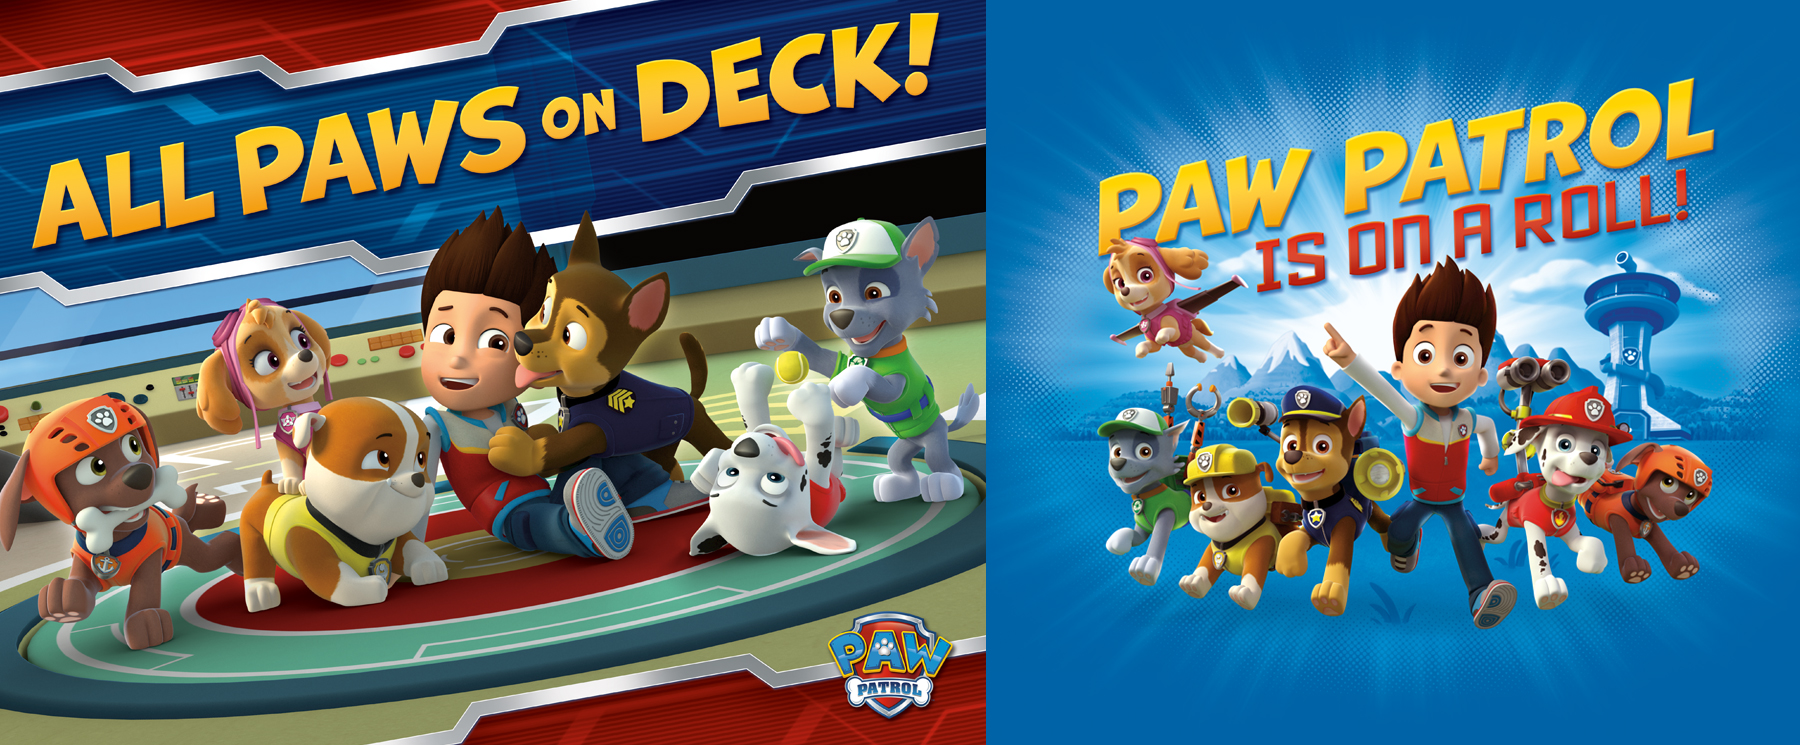 Paw Patrol Style Guide Design - Thumb 3